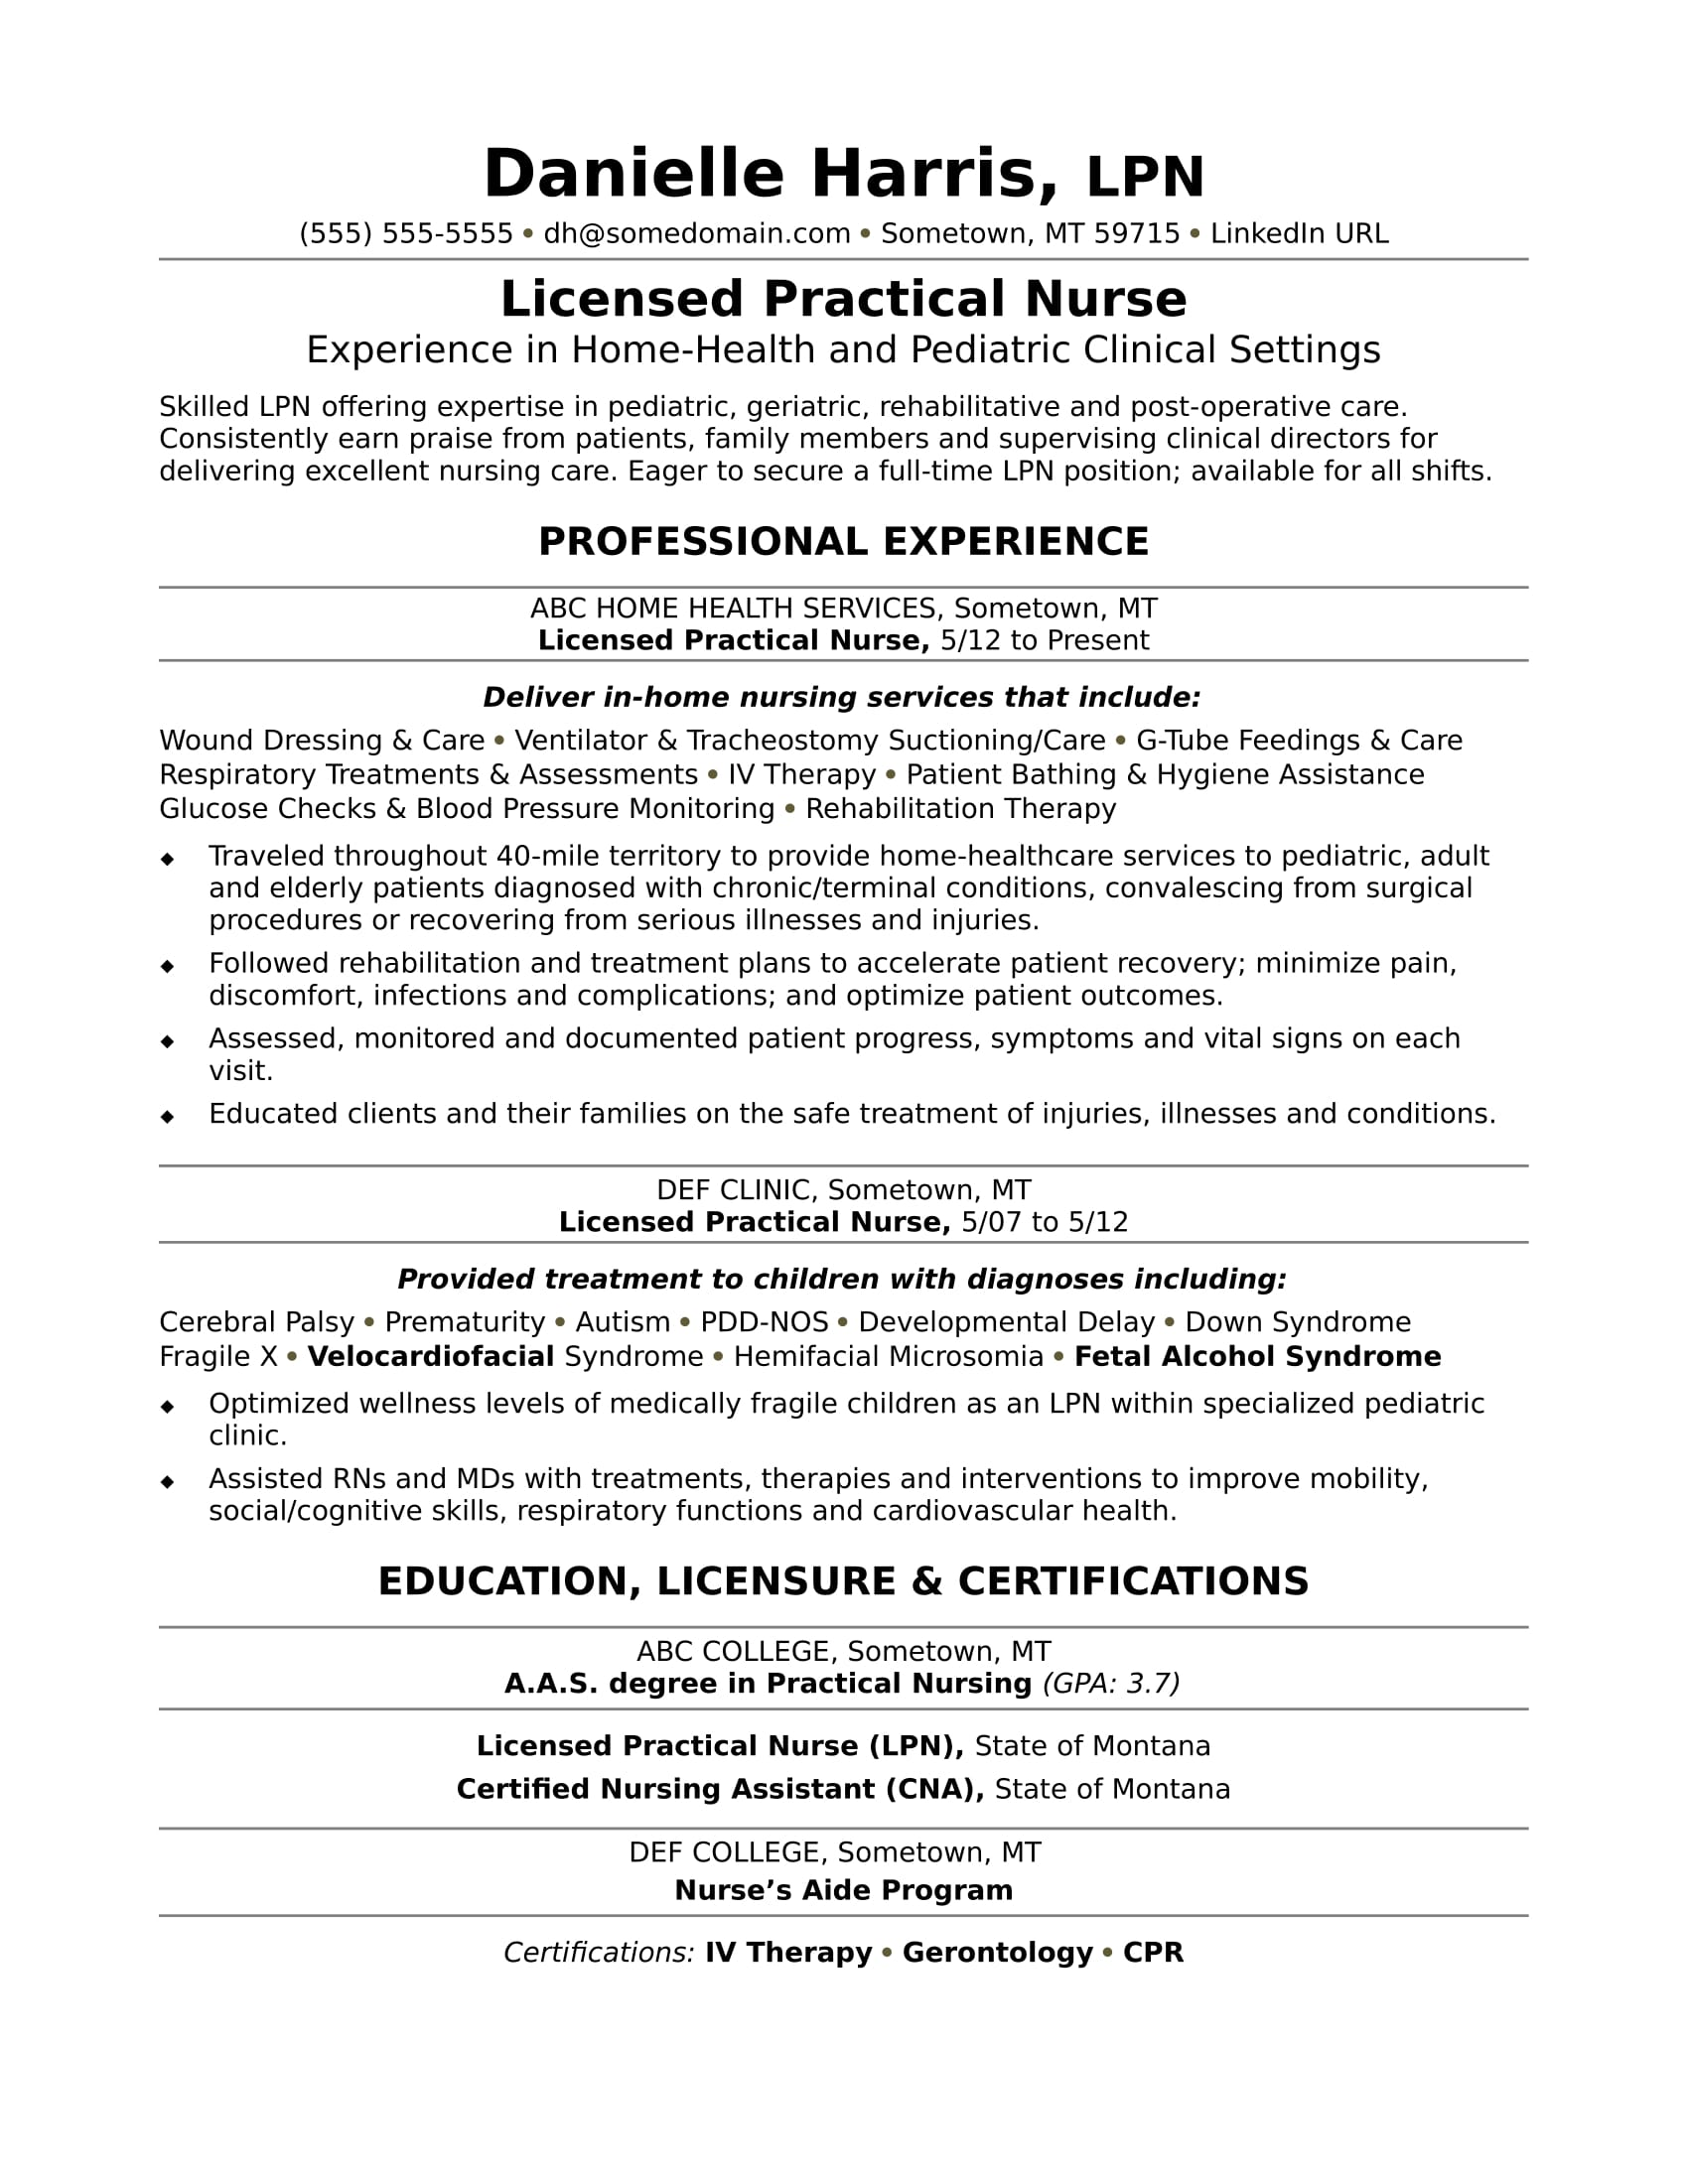 Delightful Licensed Practical Nurse Resume Sample Intended For Lpn Skills For Resume